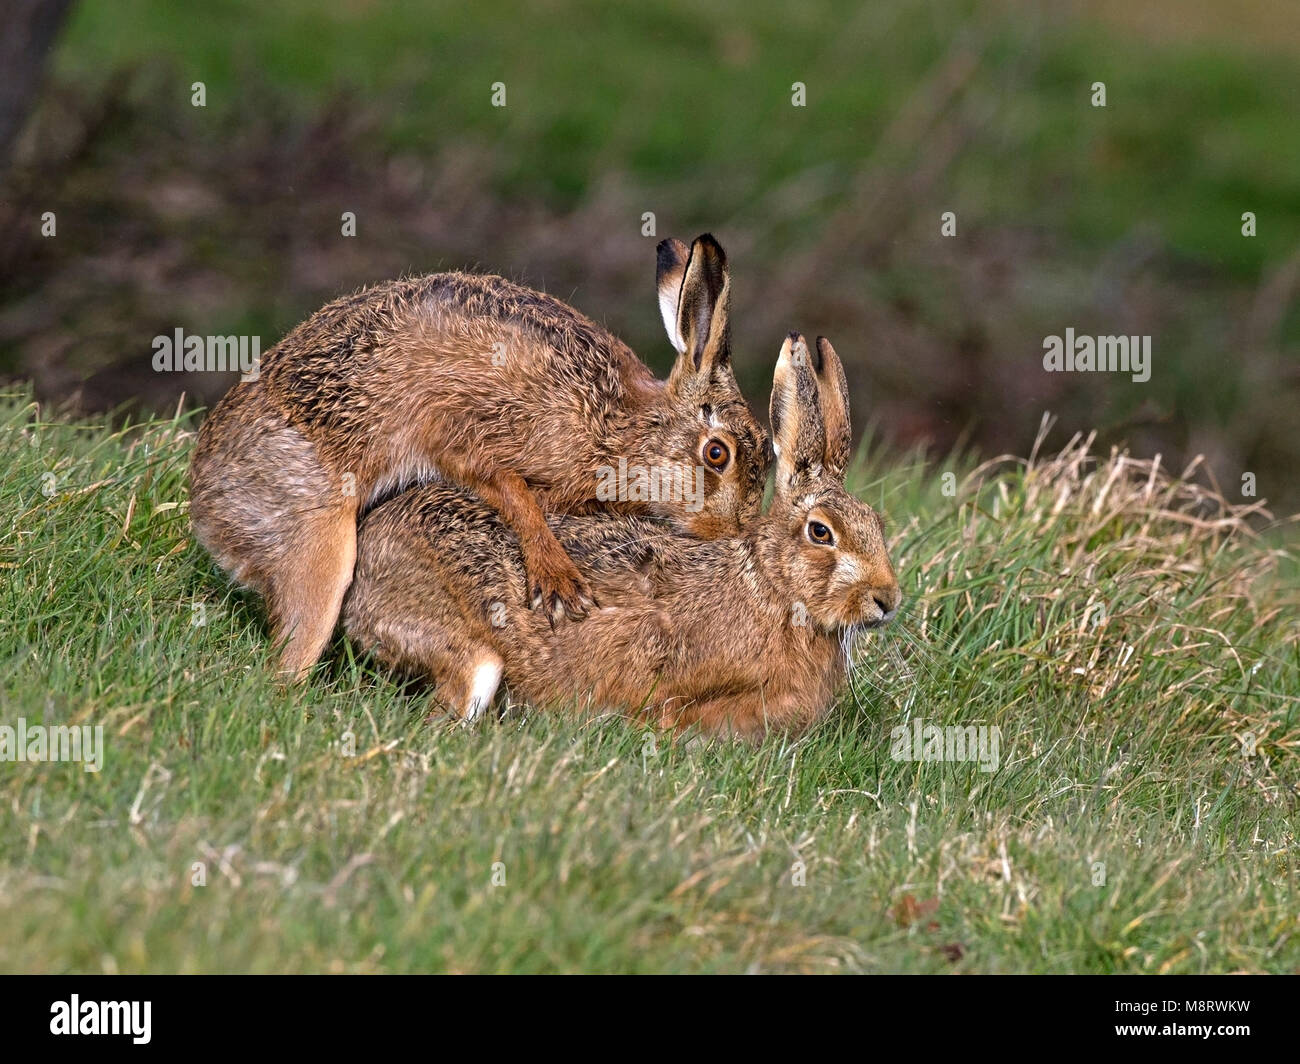 European brown hare mating - Stock Image